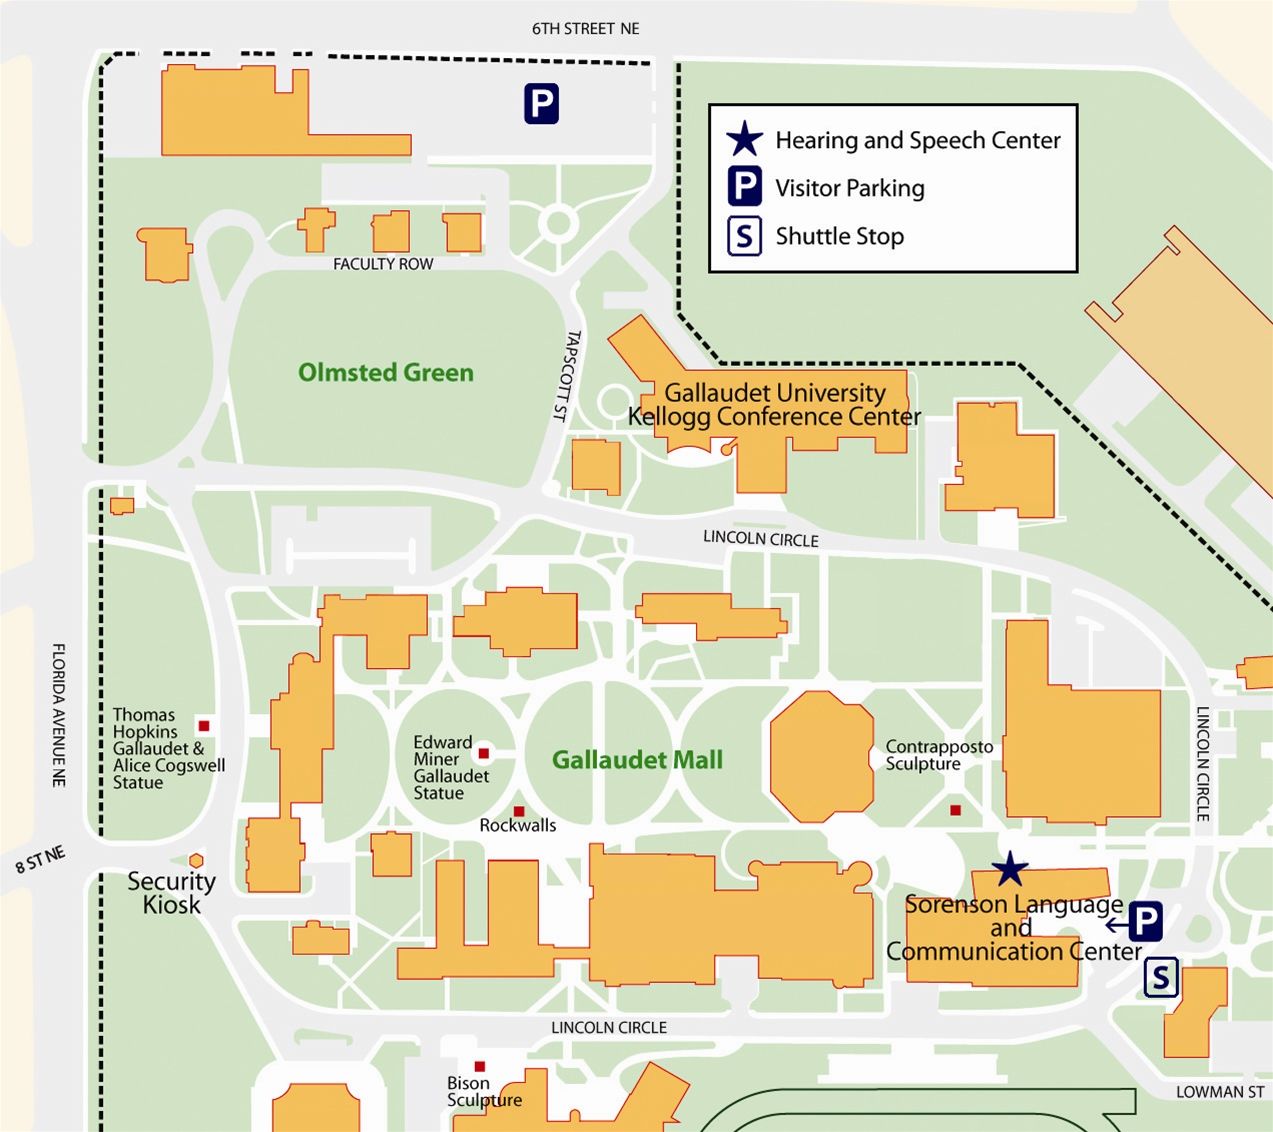 Reserved Parking Lots – Gallaudet University on university of jordan map, union memorial student center map, jordan high-tech center map, salt lake community college jordan campus map, slcc taylorsville redwood campus, taylorsville lake map, oklahoma memorial union university campus map, gallaudet university campus map,